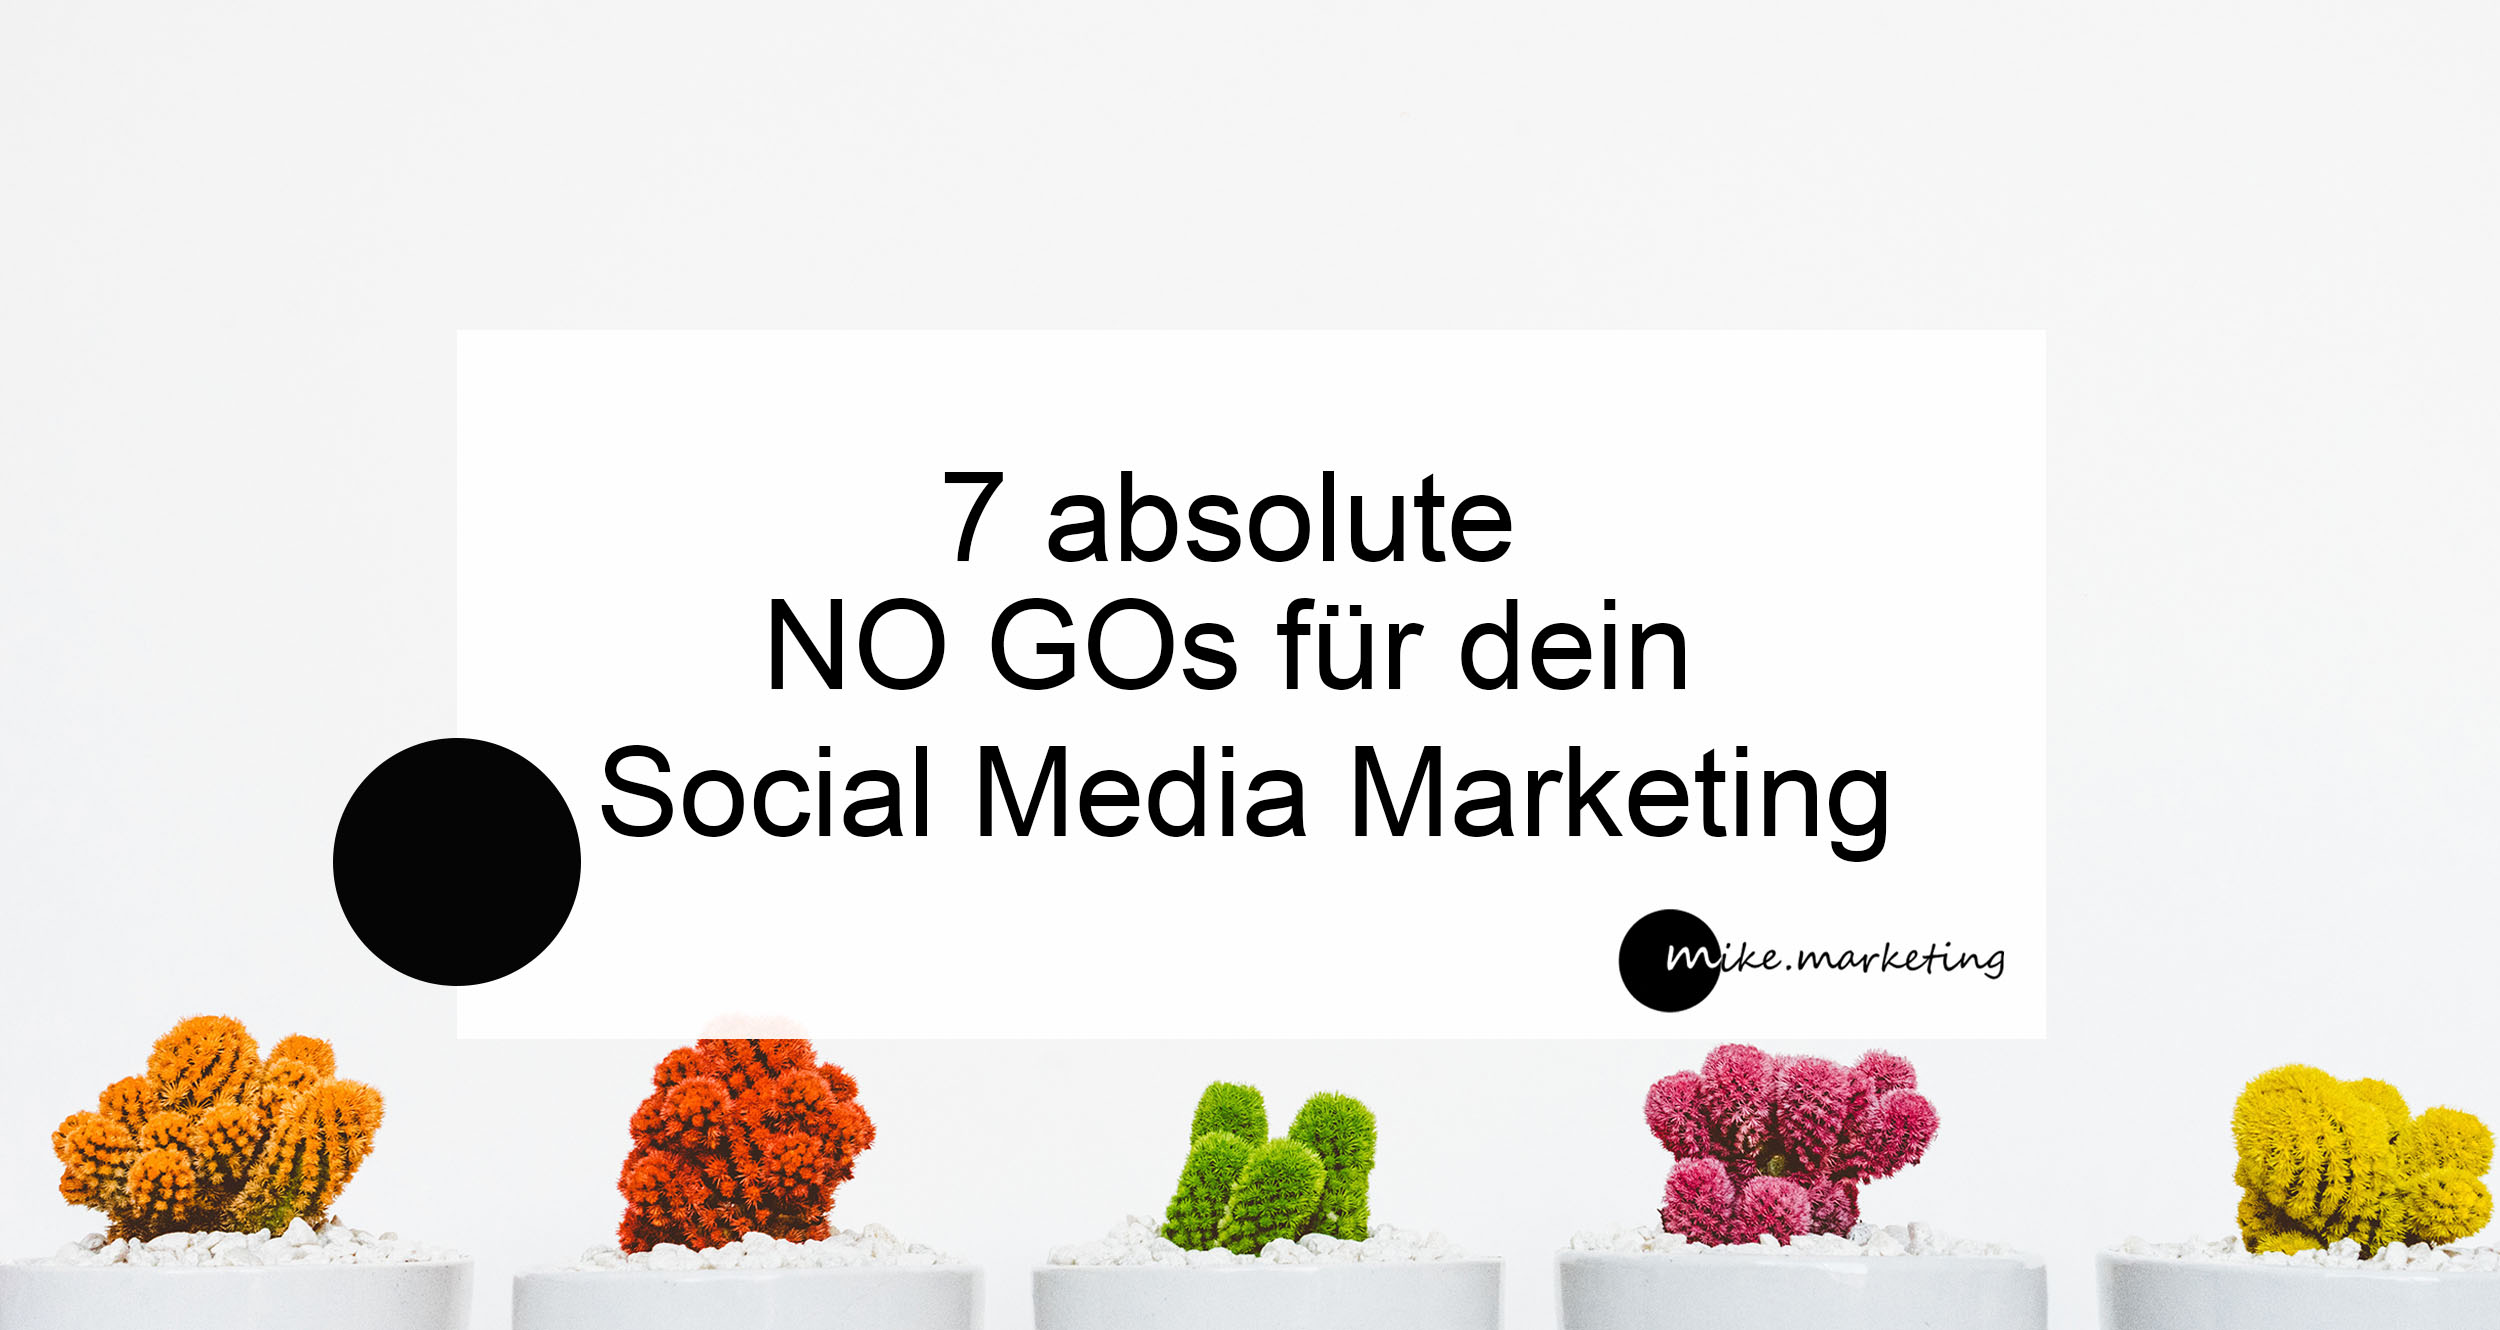 no go social media marketing_mikemarketing_Michaela Benkitsch